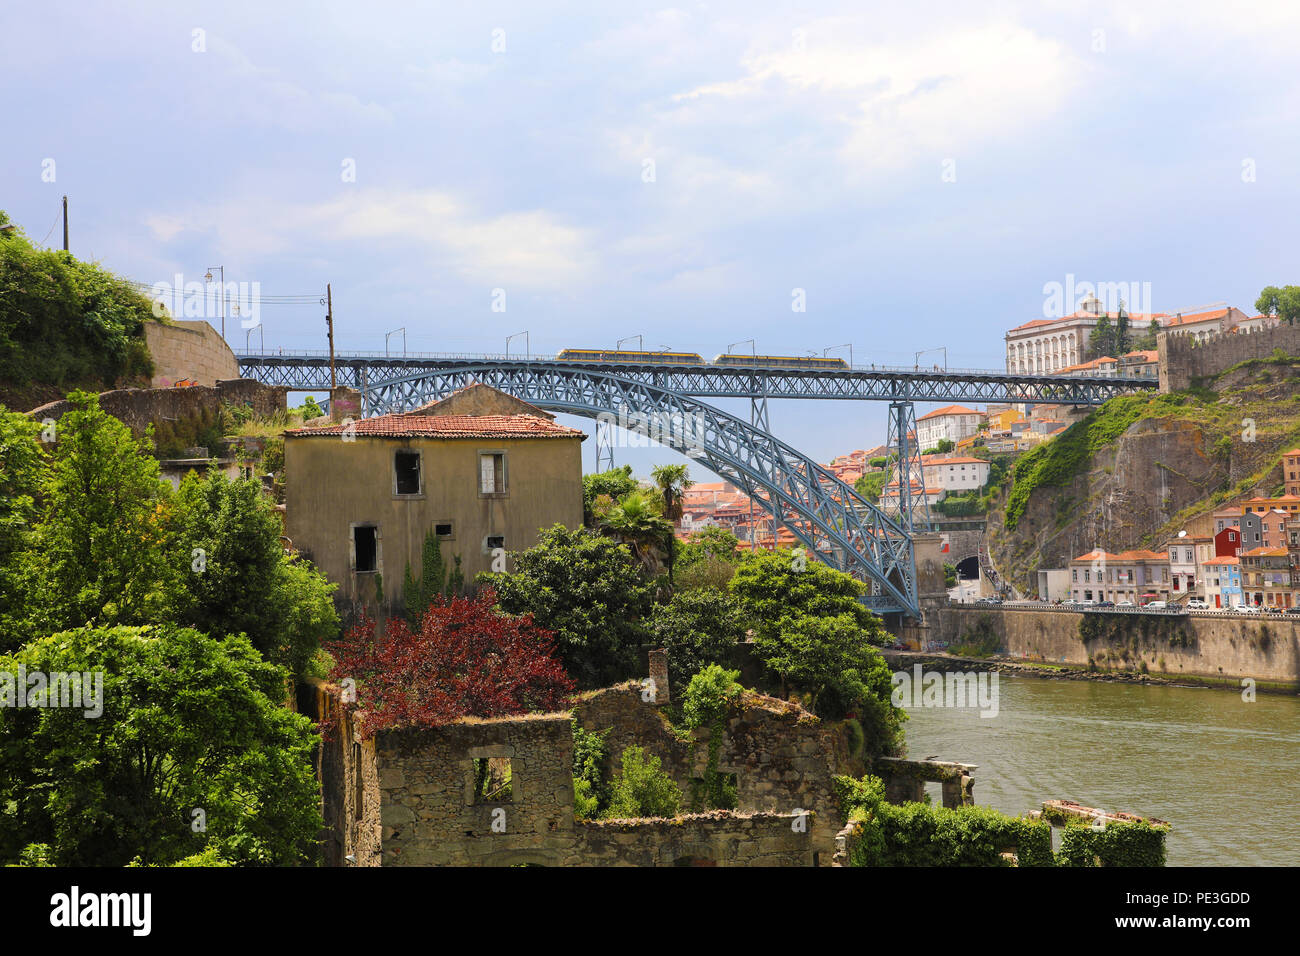 Dom Luis I bridge with tram passing and Douro River with old ruins in foreground, Porto, Portugal - Stock Image